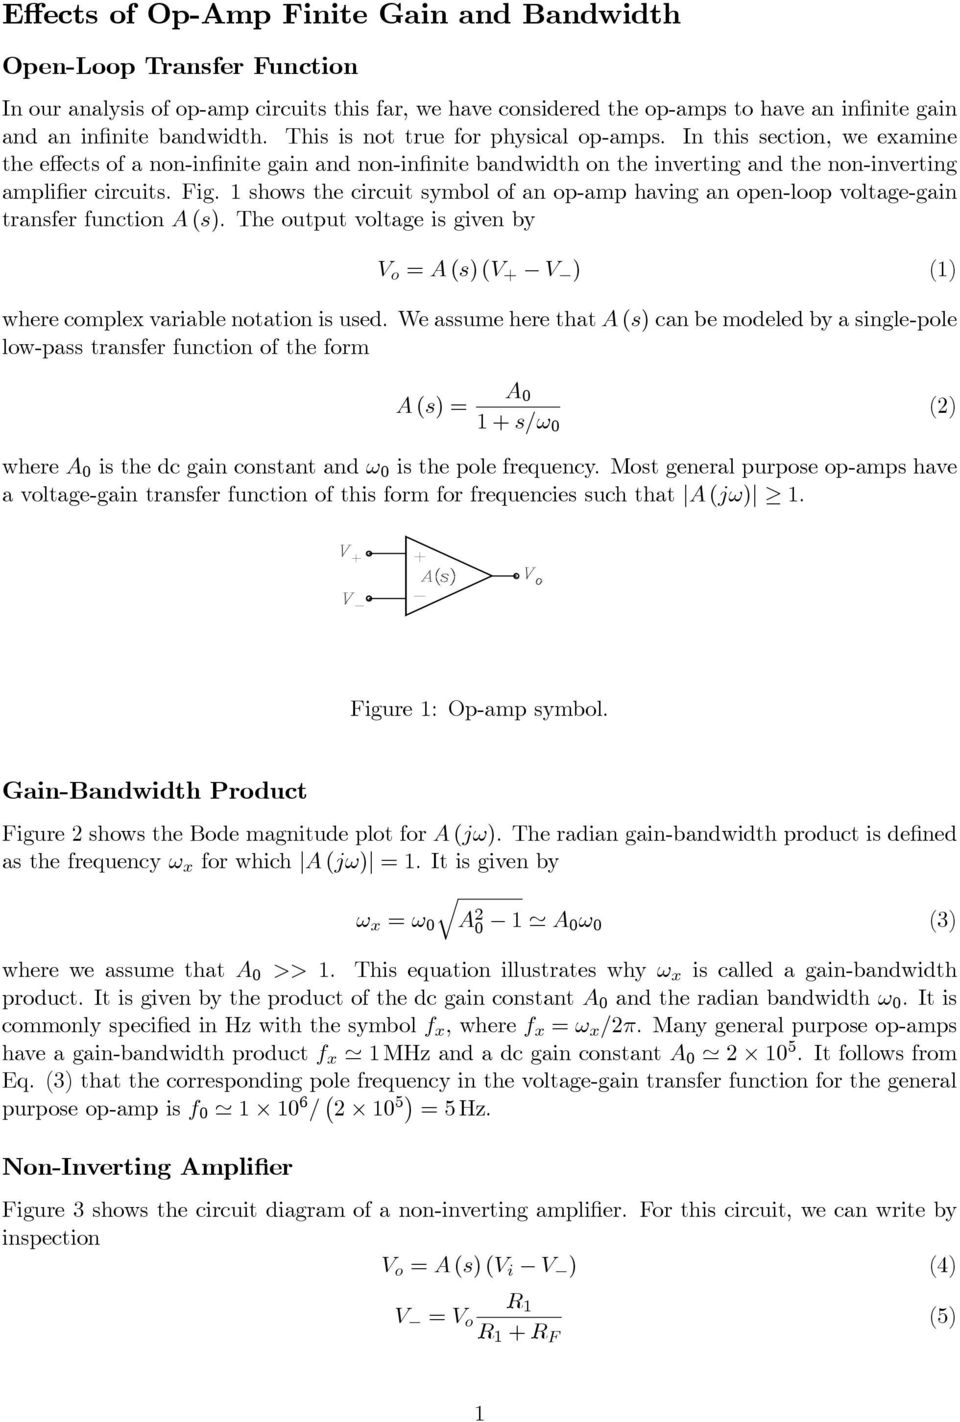 Effects Of Op Amp Finite Gain And Bandwidth Pdf